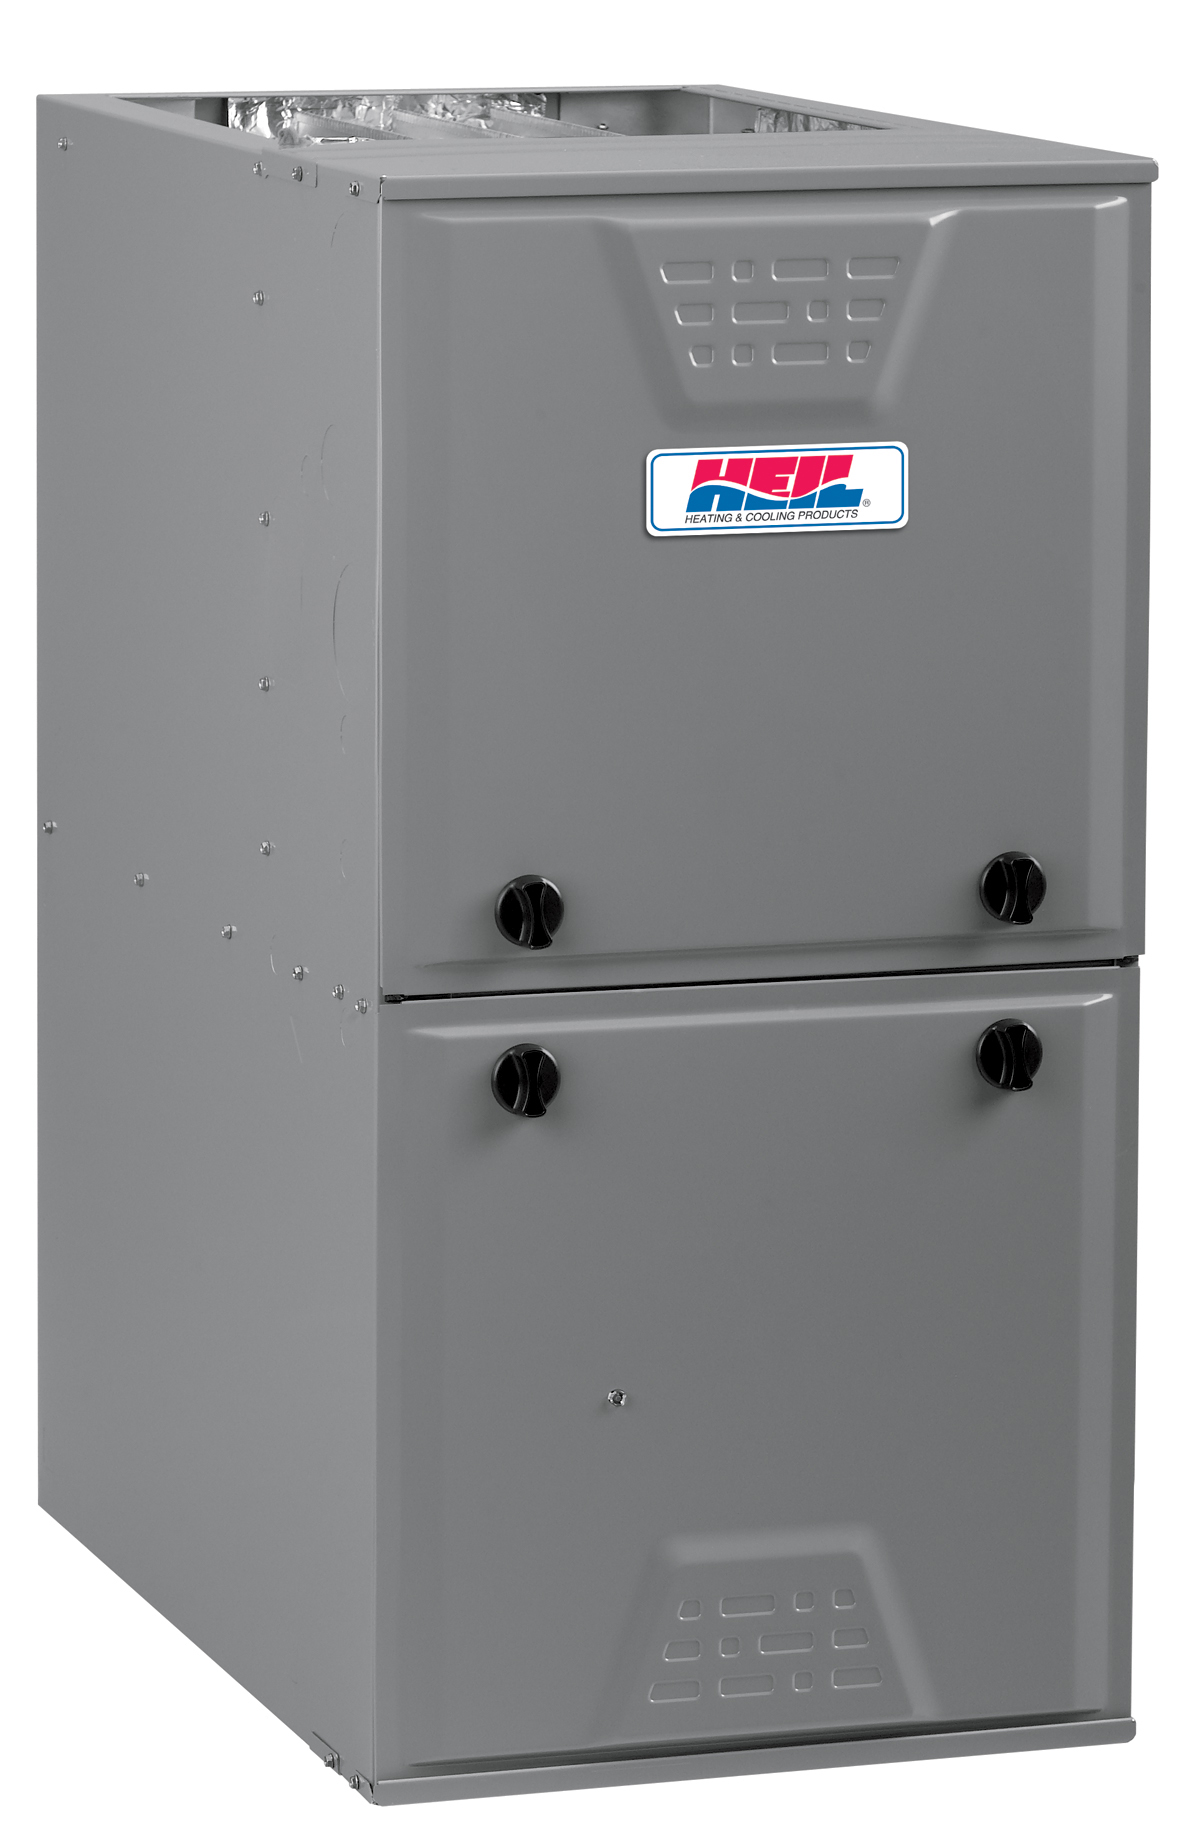 Heat Pump System Installation moreover Heil Gas Furnace Wiring Diagram together with Miami Heat Pump Wiring Diagram also Gas Furnaces further Fan Limit Switch Guide. on heil furnace installation